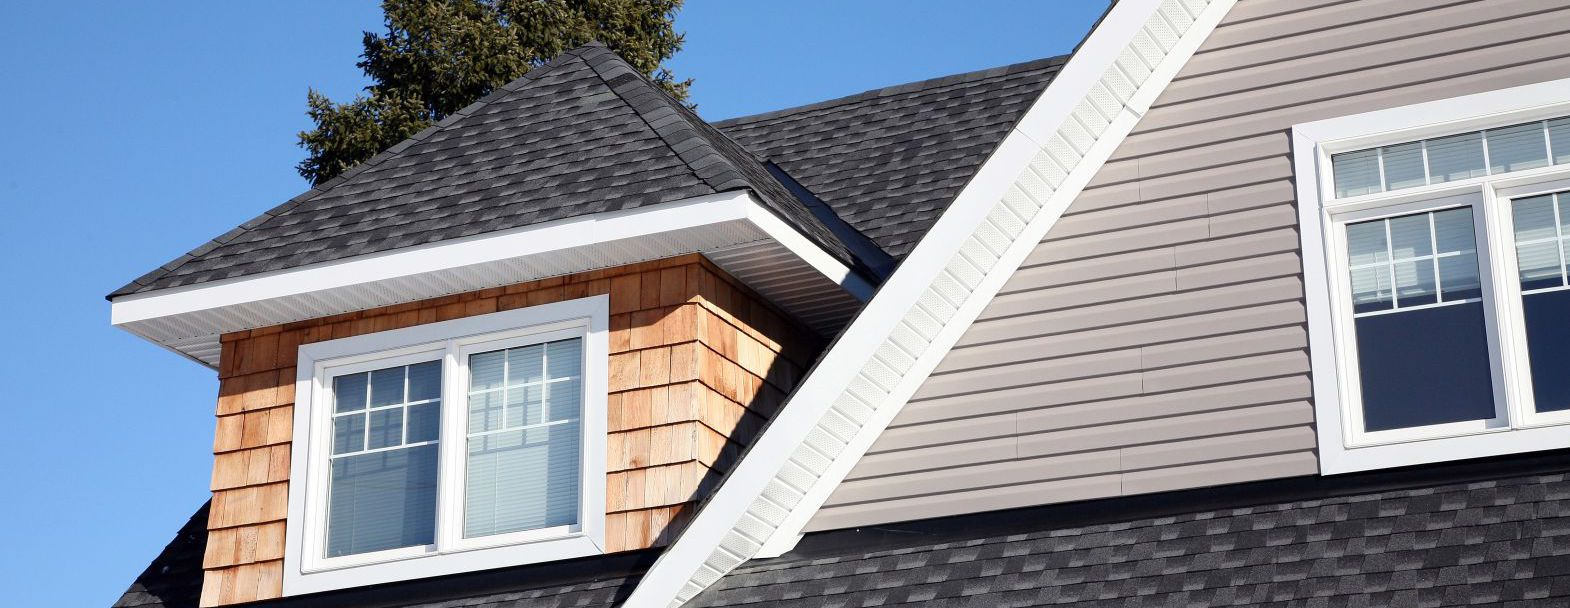 Thomson Roofing Llc Coupons Near Me In 8coupons